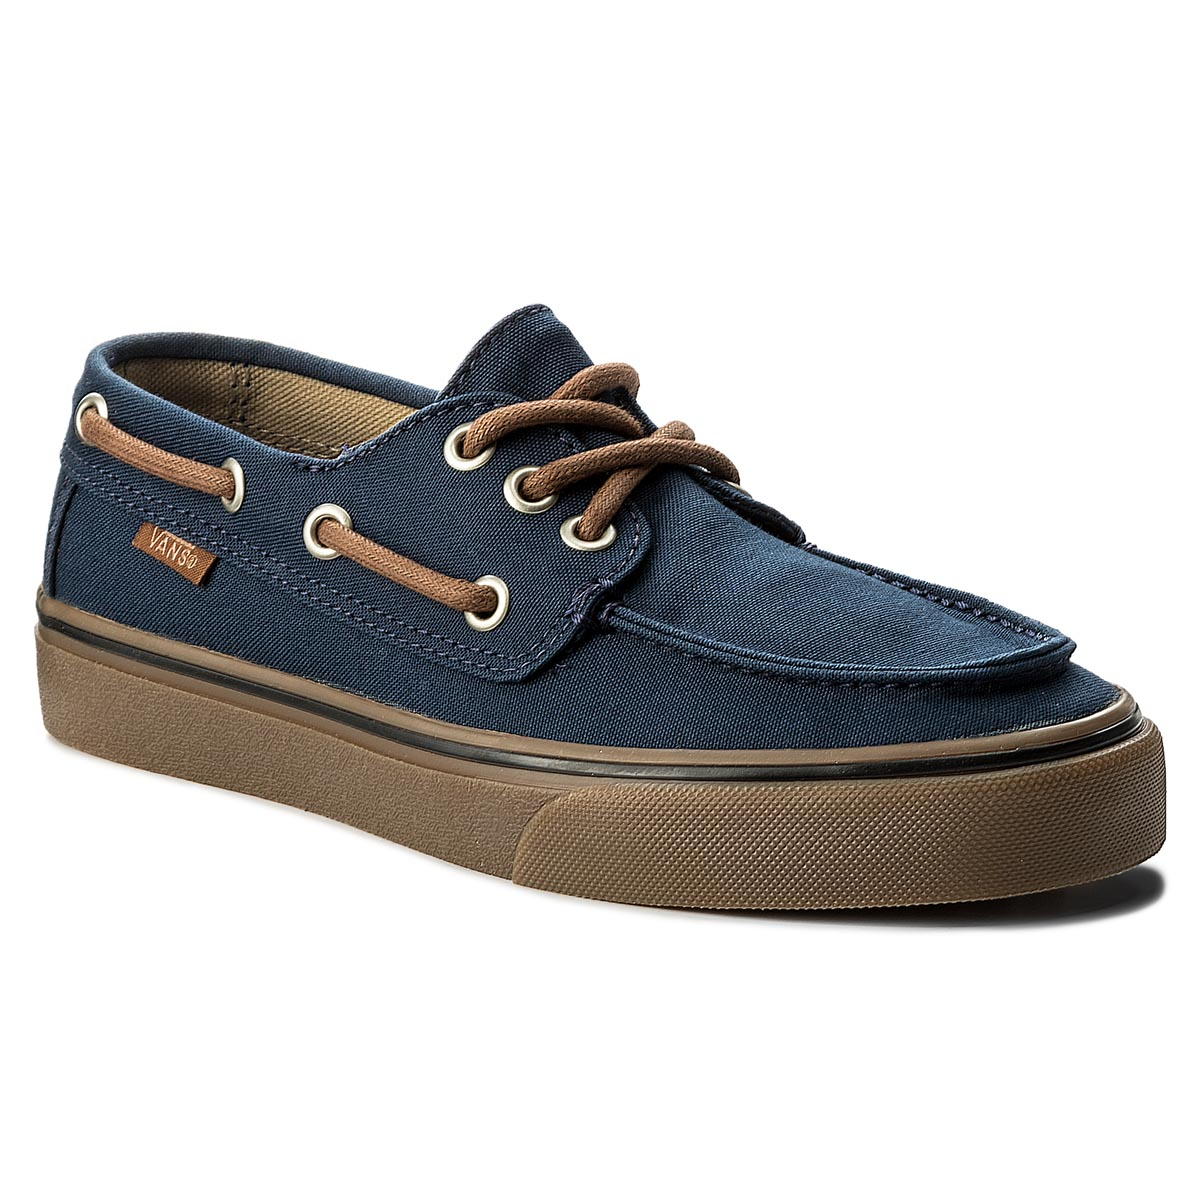 Teniși VANS - Chauffeur Sf VN0A3MUBFS1 Dress Blues/Gum